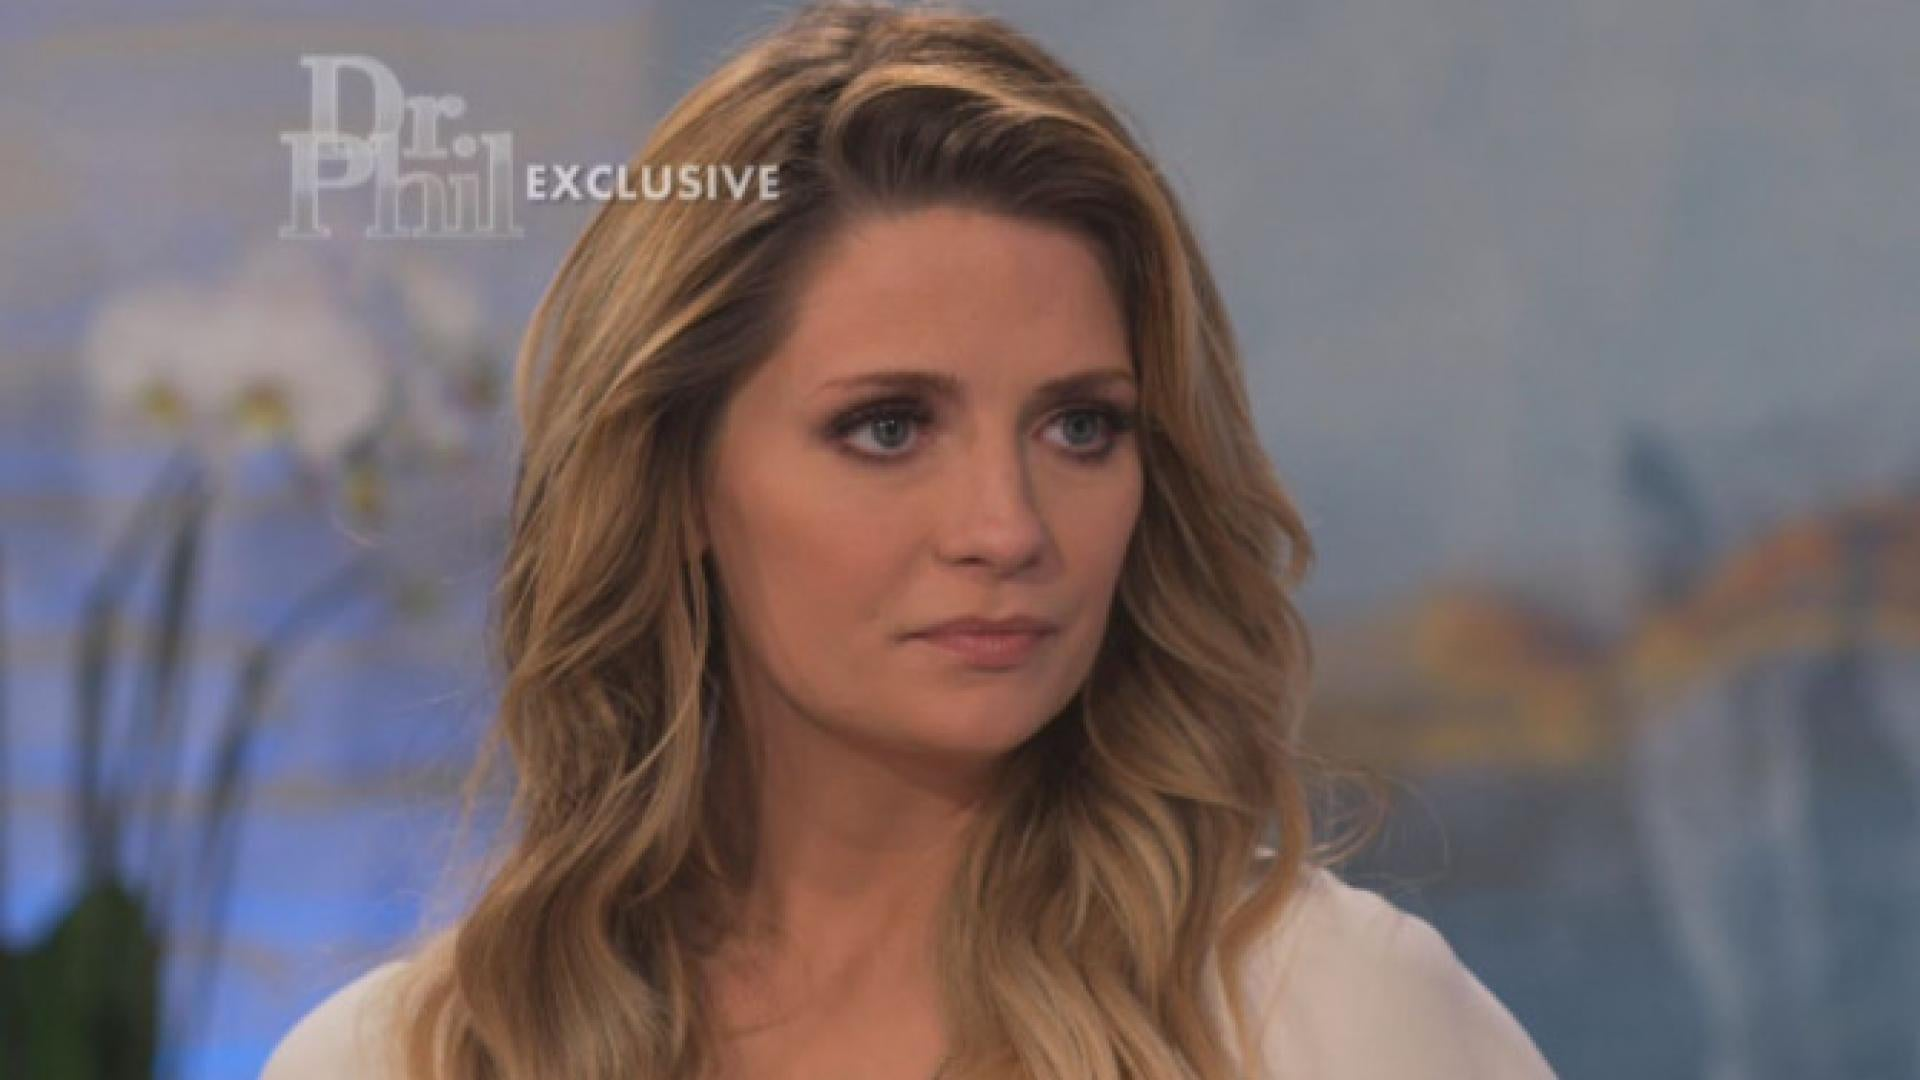 Amanda Seyfried Sex Tape mischa barton opens up to dr. phil about sex tape ordeal